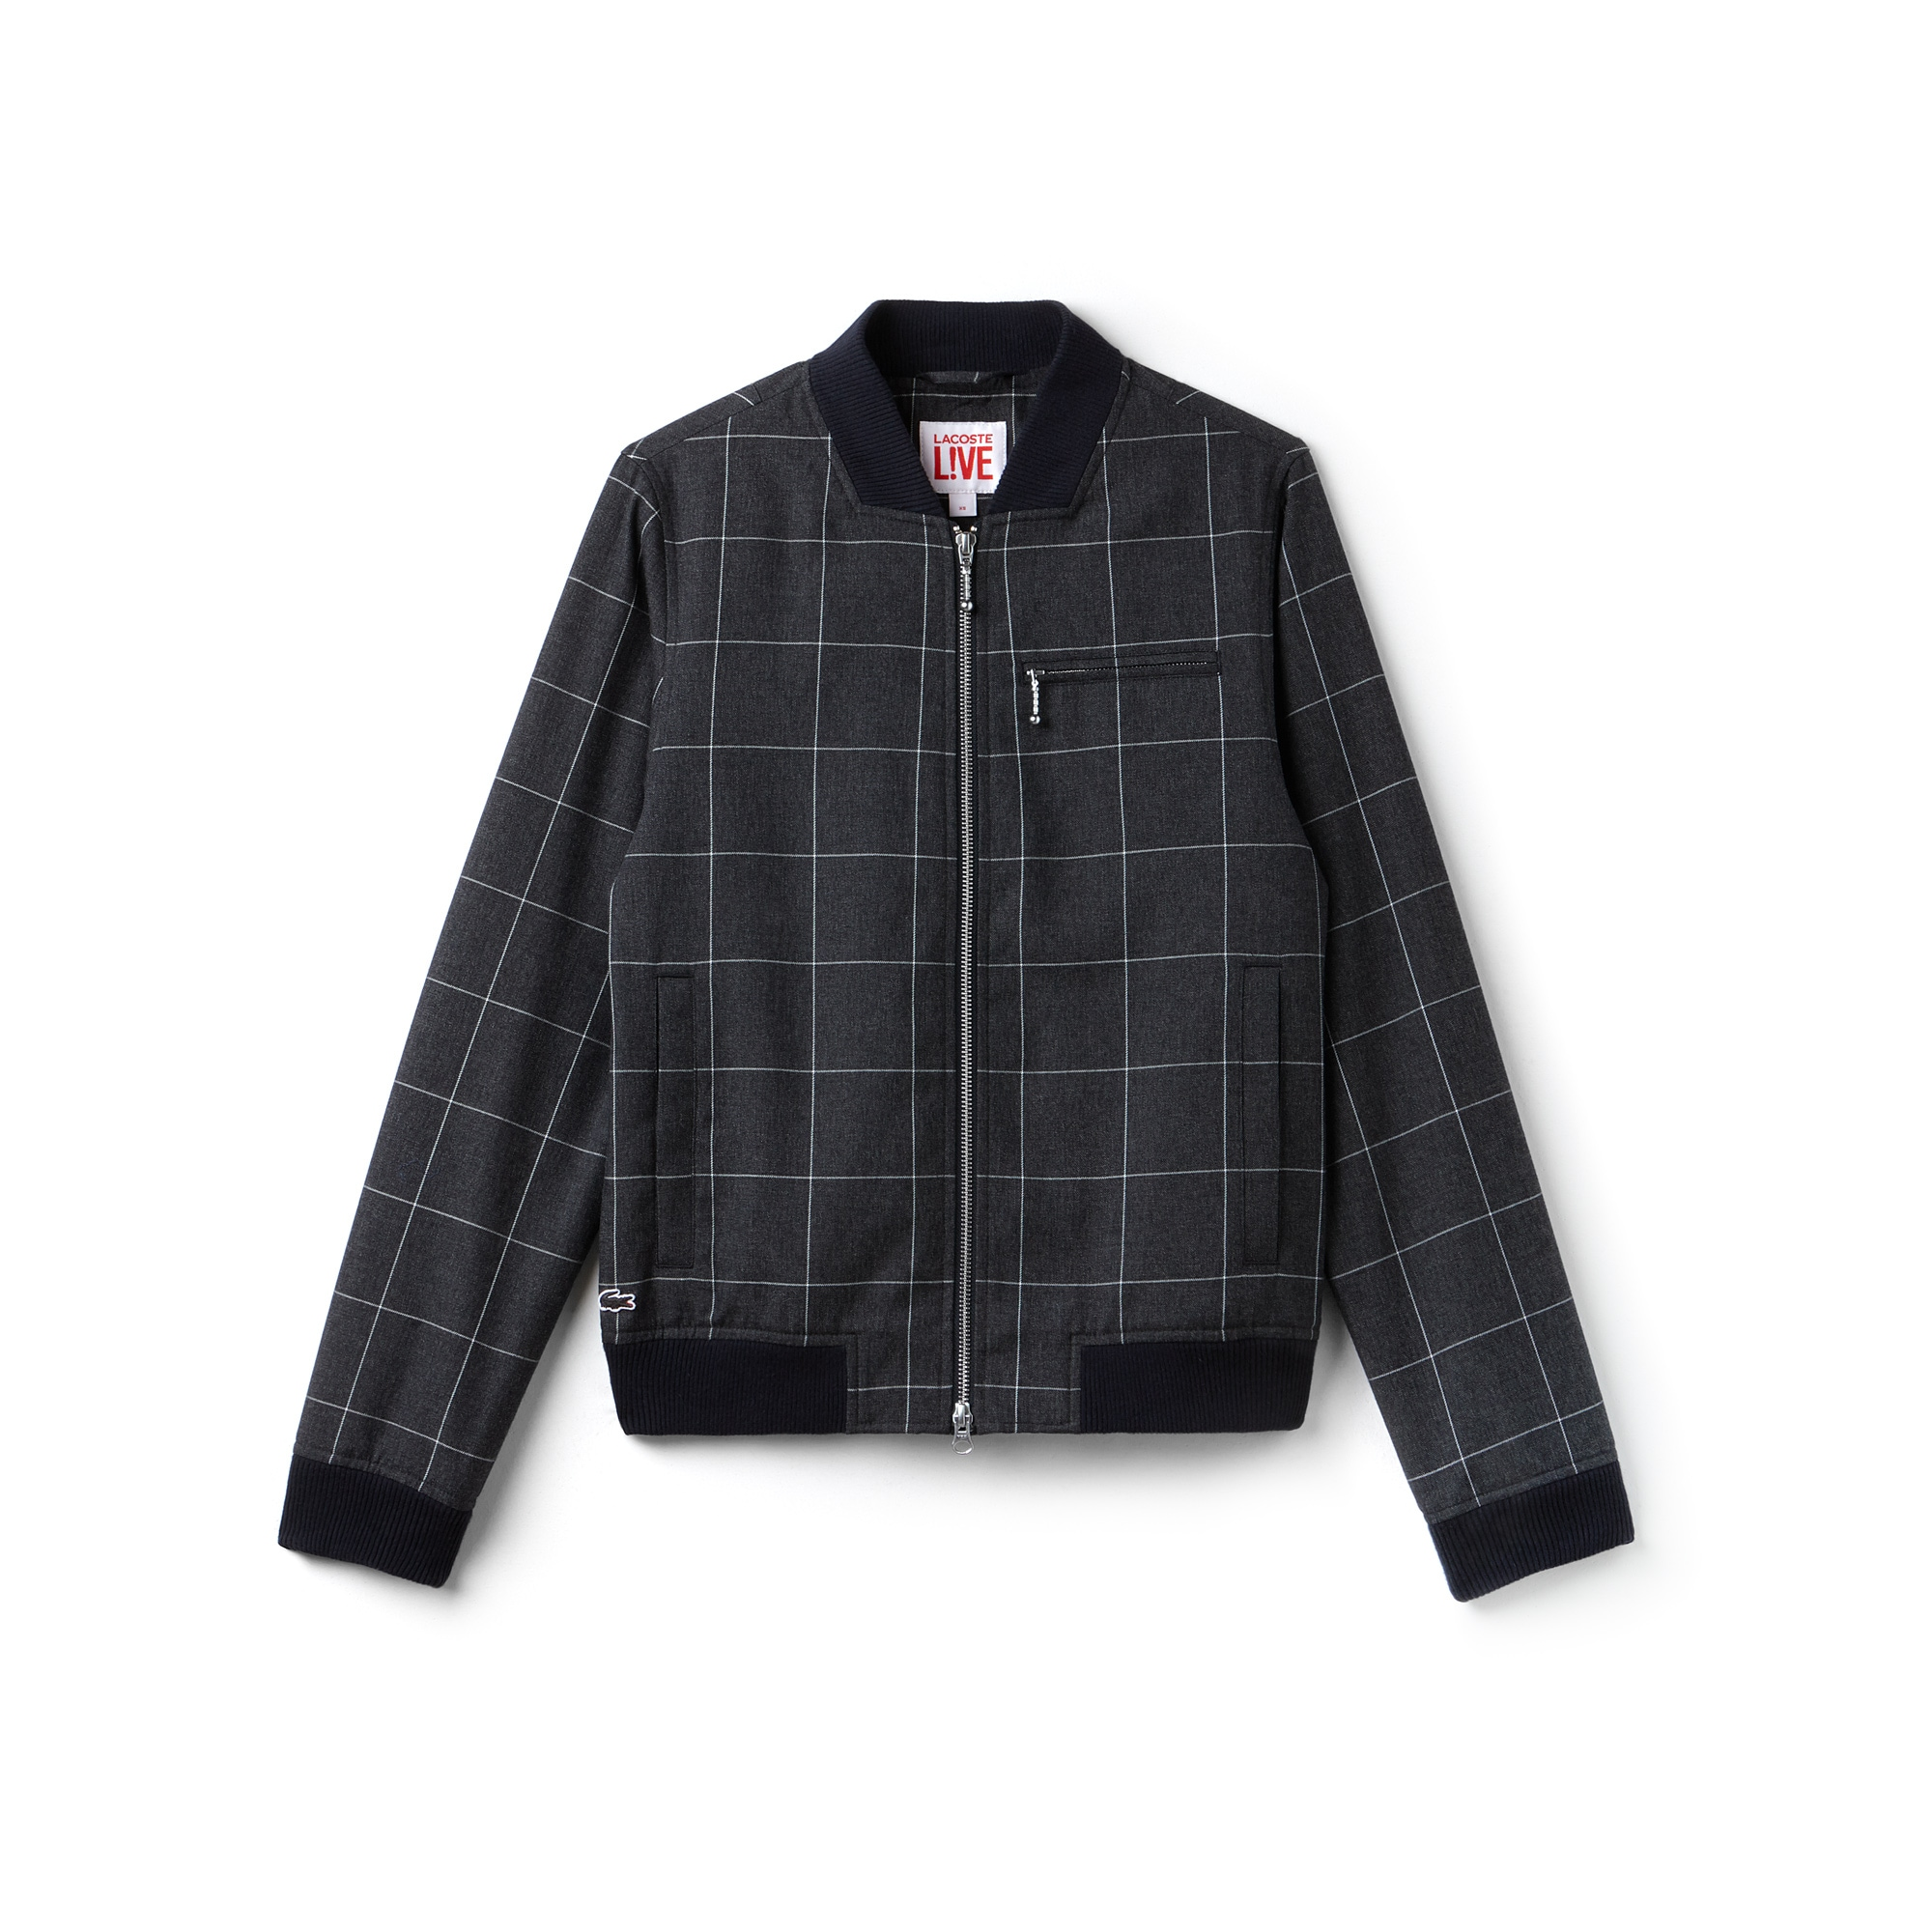 Unisex  LIVE Check Flannel Bomber Jacket